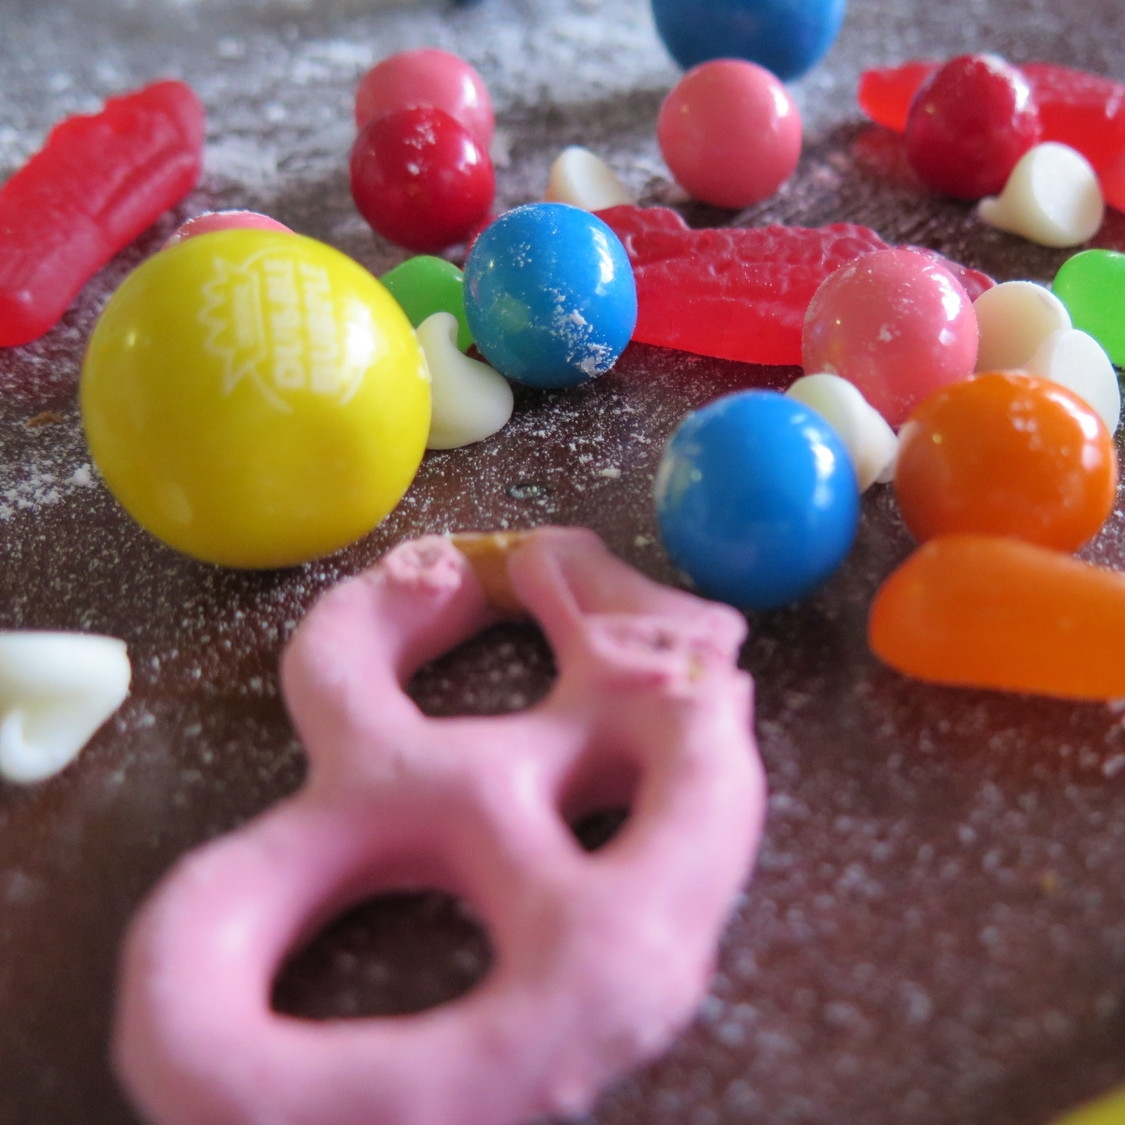 Candy: The Final Frontier